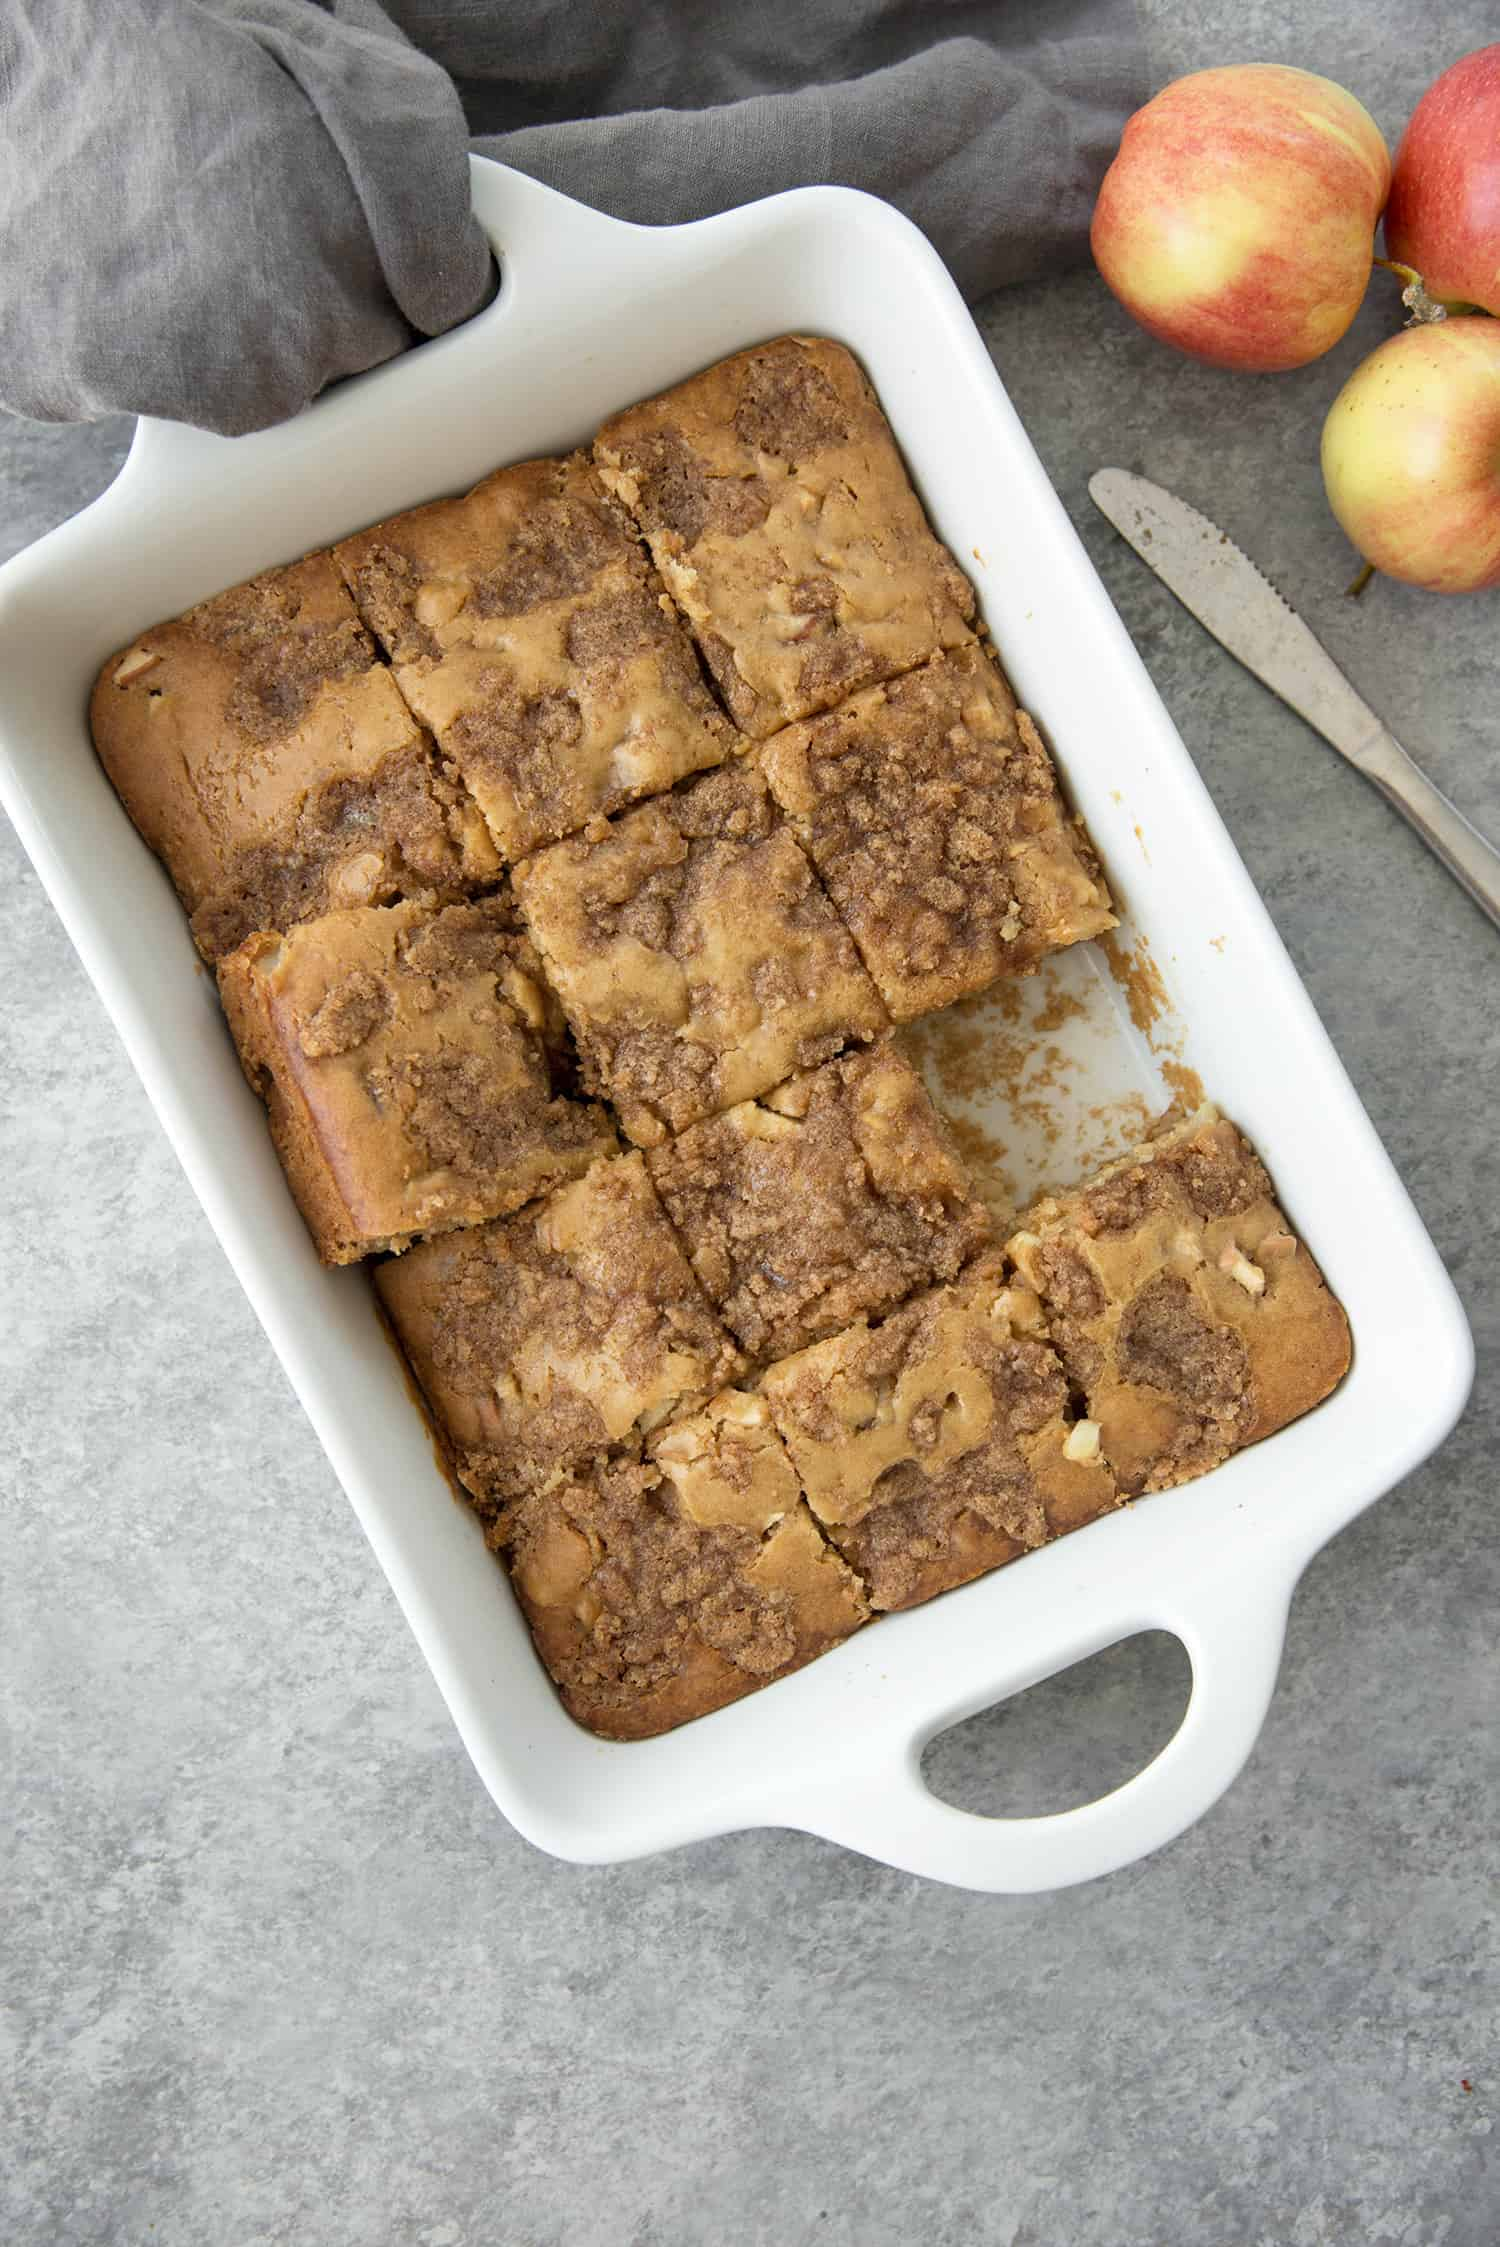 Cinnamon Spice Apple Cake! Similar to a coffee cake, perfect for brunch. This cake is packed with fresh apples and spices and topped with cinnamon-sugar. A must-make for Fall. | www.delishknowledge.com